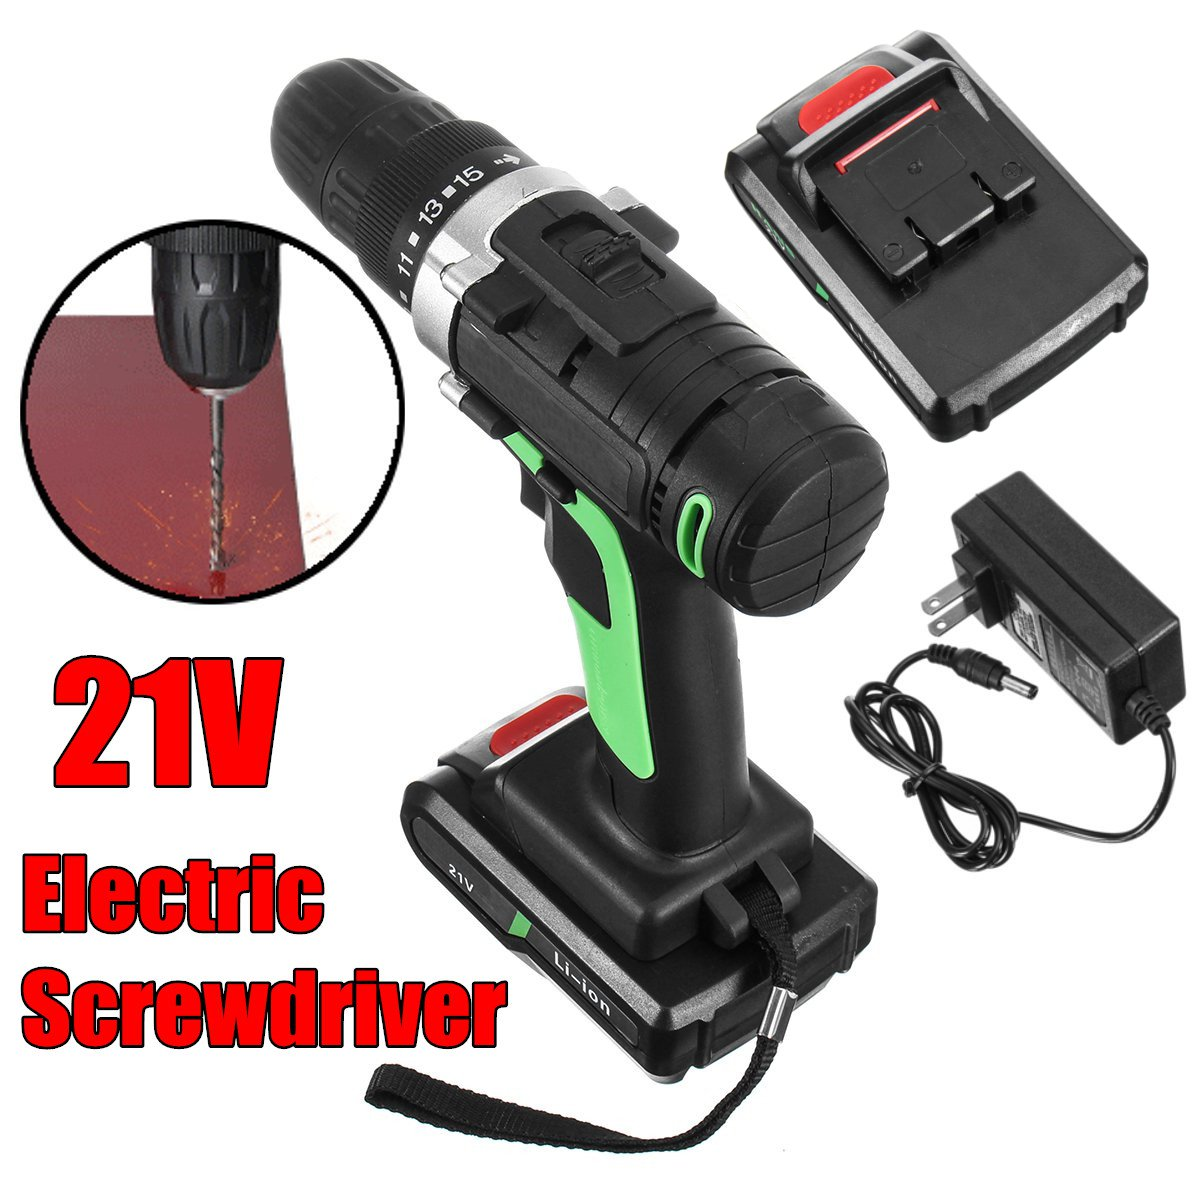 21V additional lithium-ion Battery Cordless Electric hand Drill driver Wrench hole electrical Drill power tools tenwa 21v 4000mah electric impact wrench home repair power tool lithium battery cordless wrench 280n m brush brushless drill